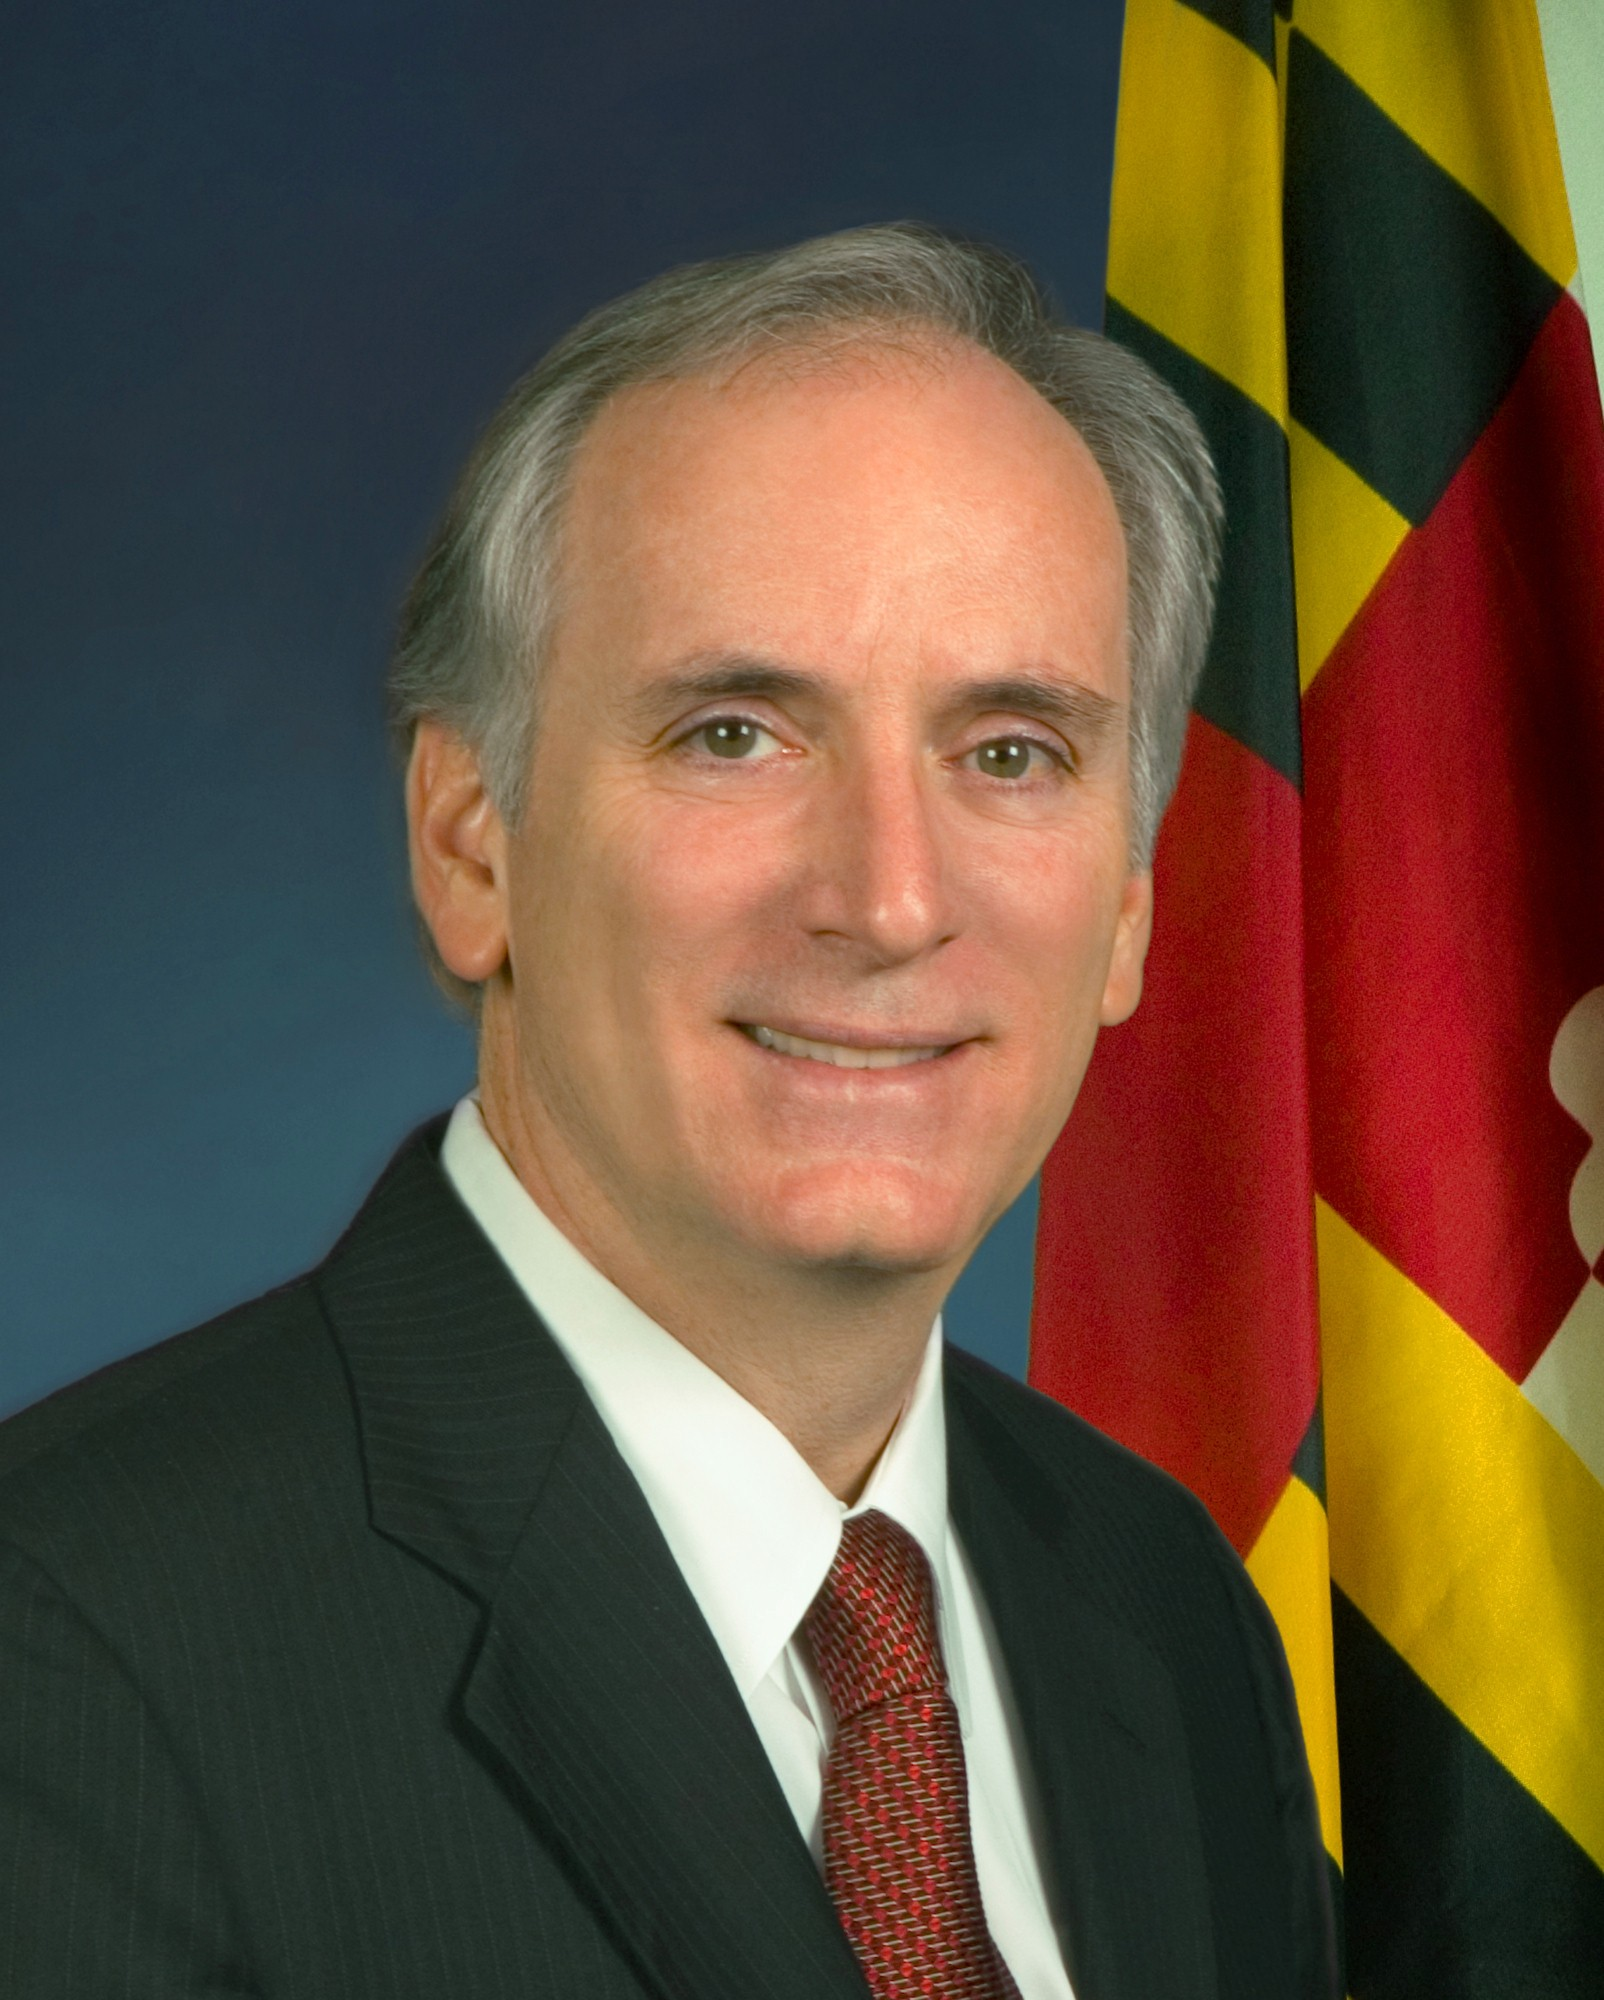 A PICTURE OF PAUL WIEDEFELD, MTA NEW ADMINISTRATOR